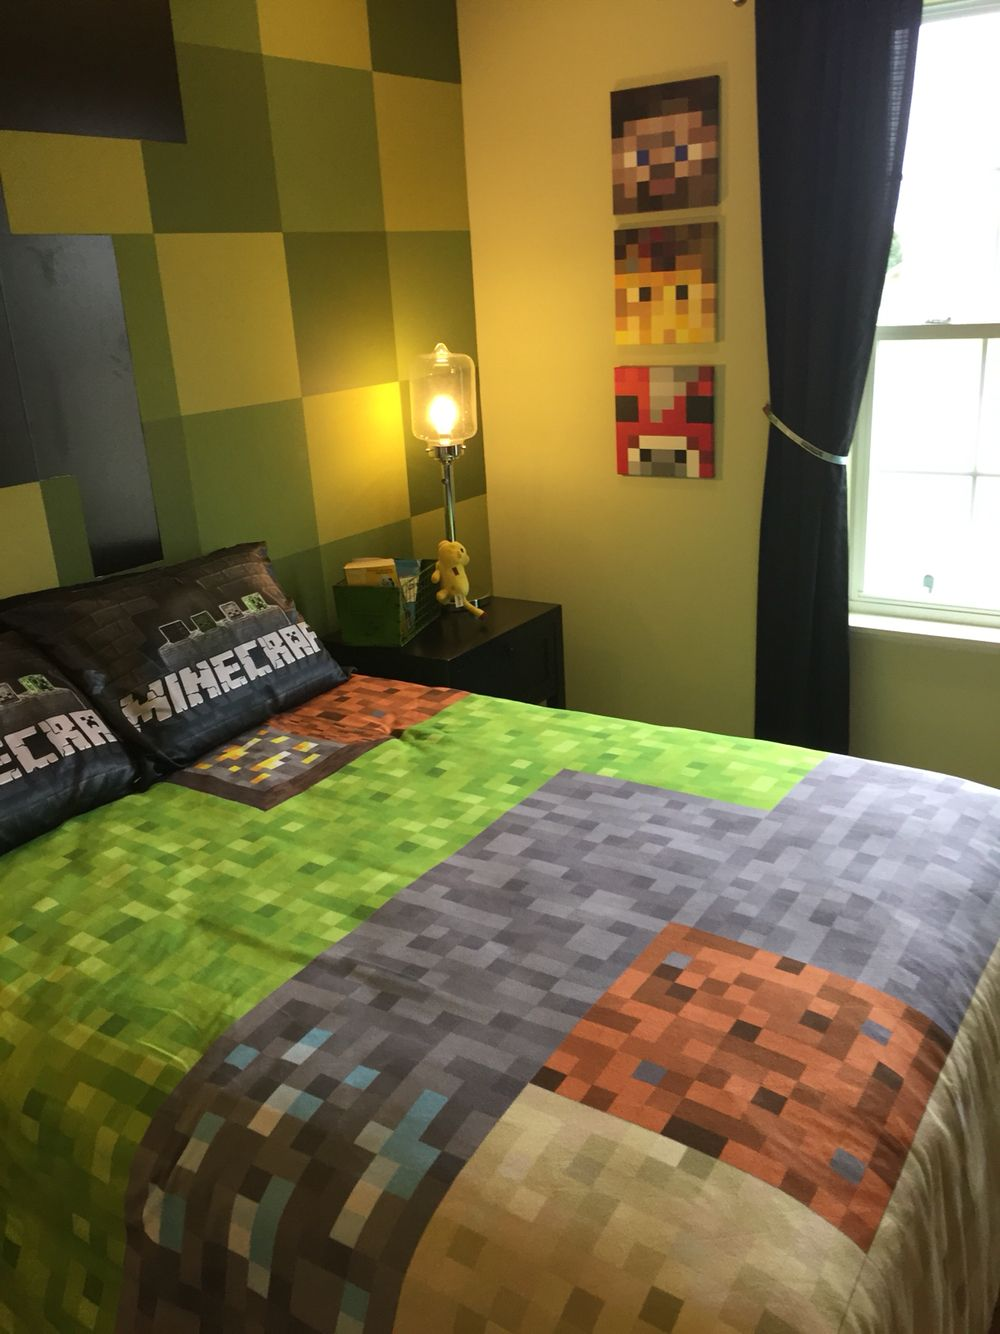 Minecraft bedroom decorations best boys ideas for teenager tween shared toddler also images in games buildings rh pinterest